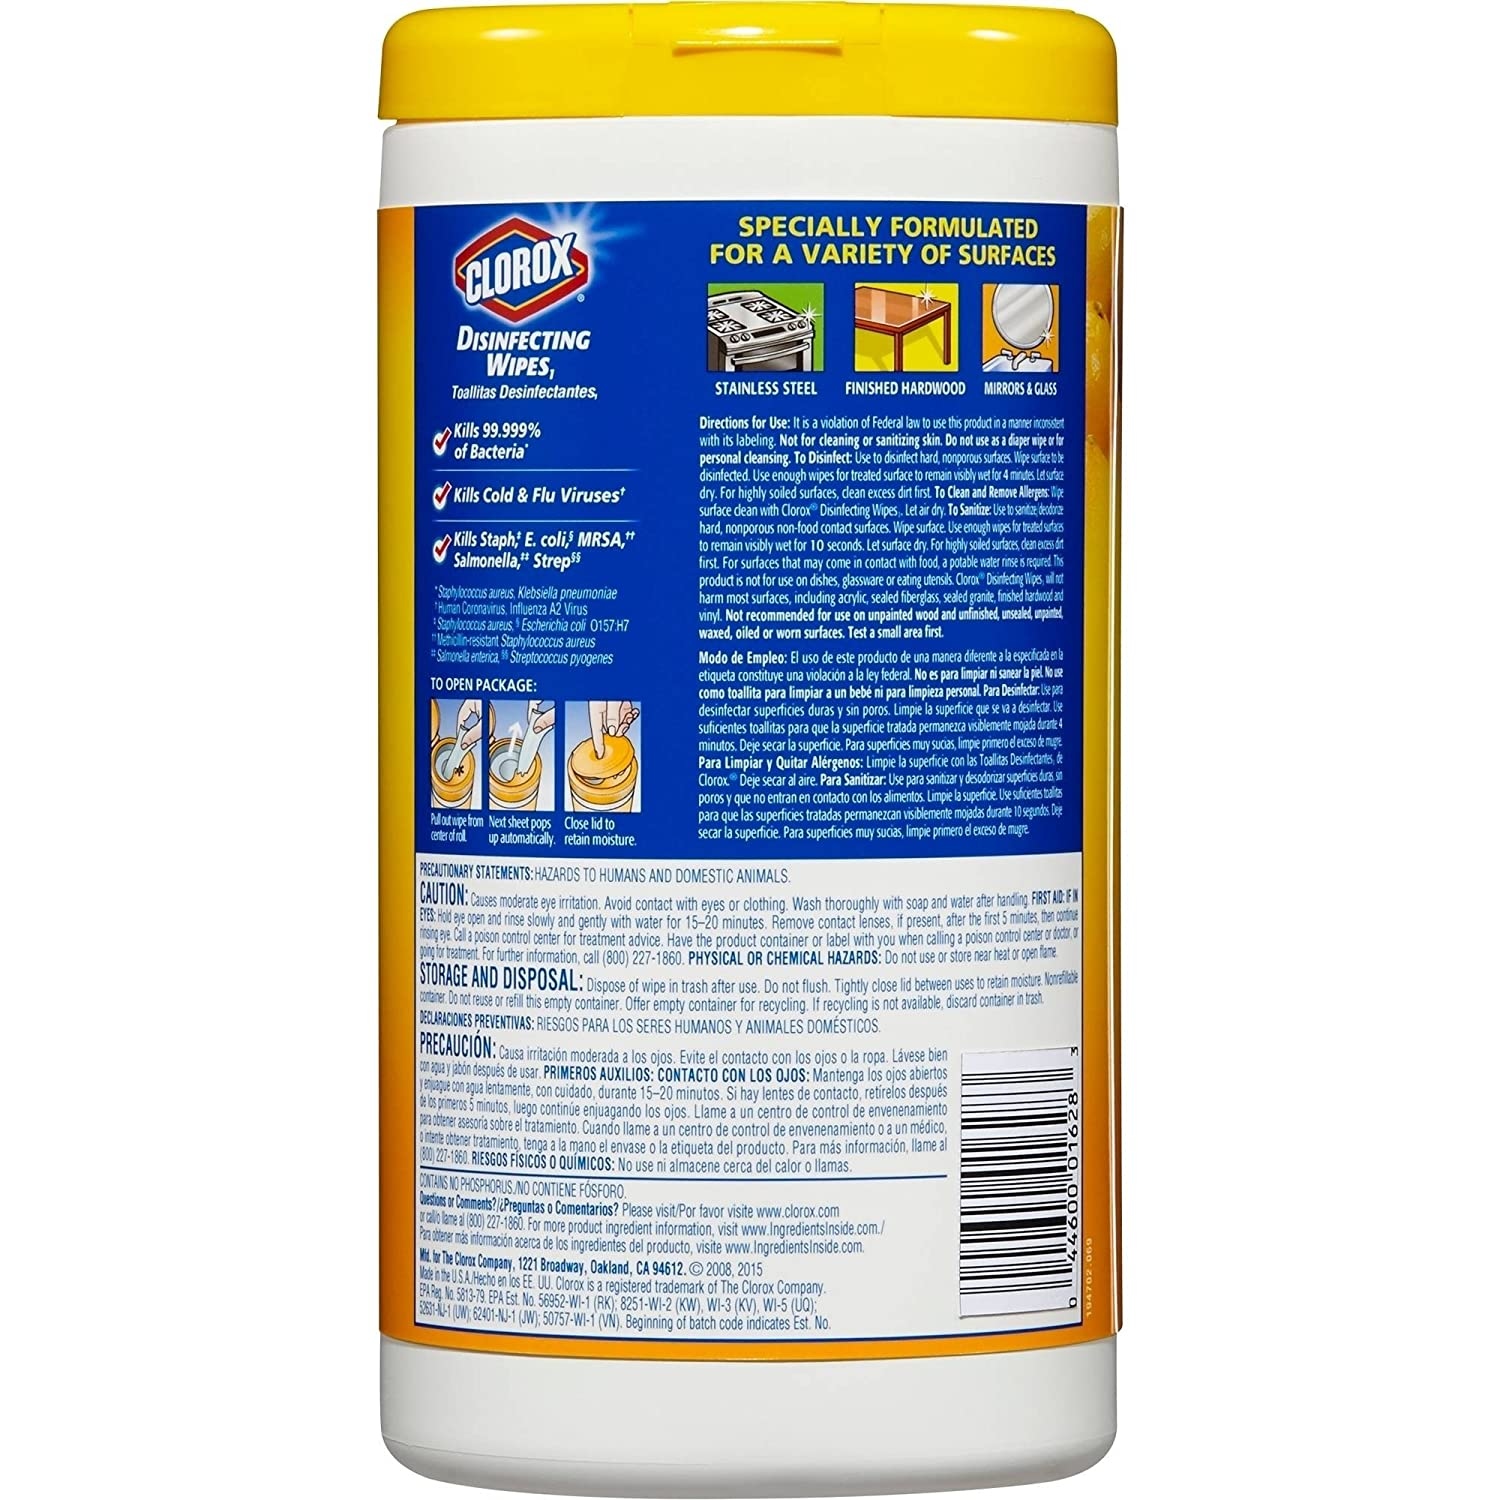 Amazon.com: Clorox Disinfecting Wipes, Citrus Blend, 75 Count, Pack of 3: Home & Kitchen